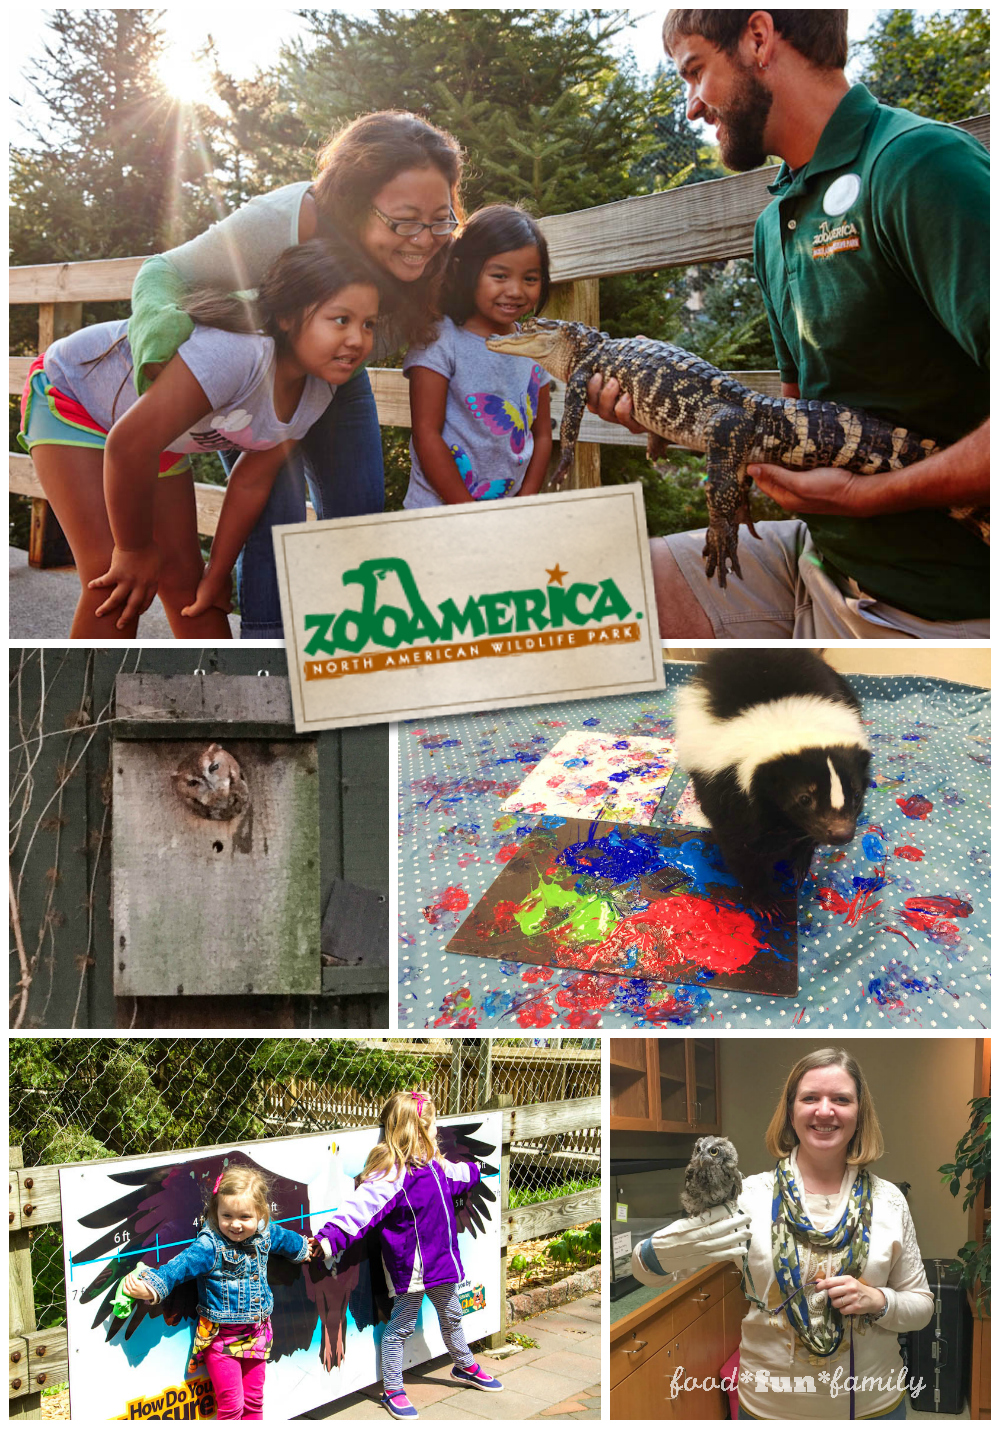 ZooAmerica at Hersheypark - a fun family place to visit from Food Fun Family